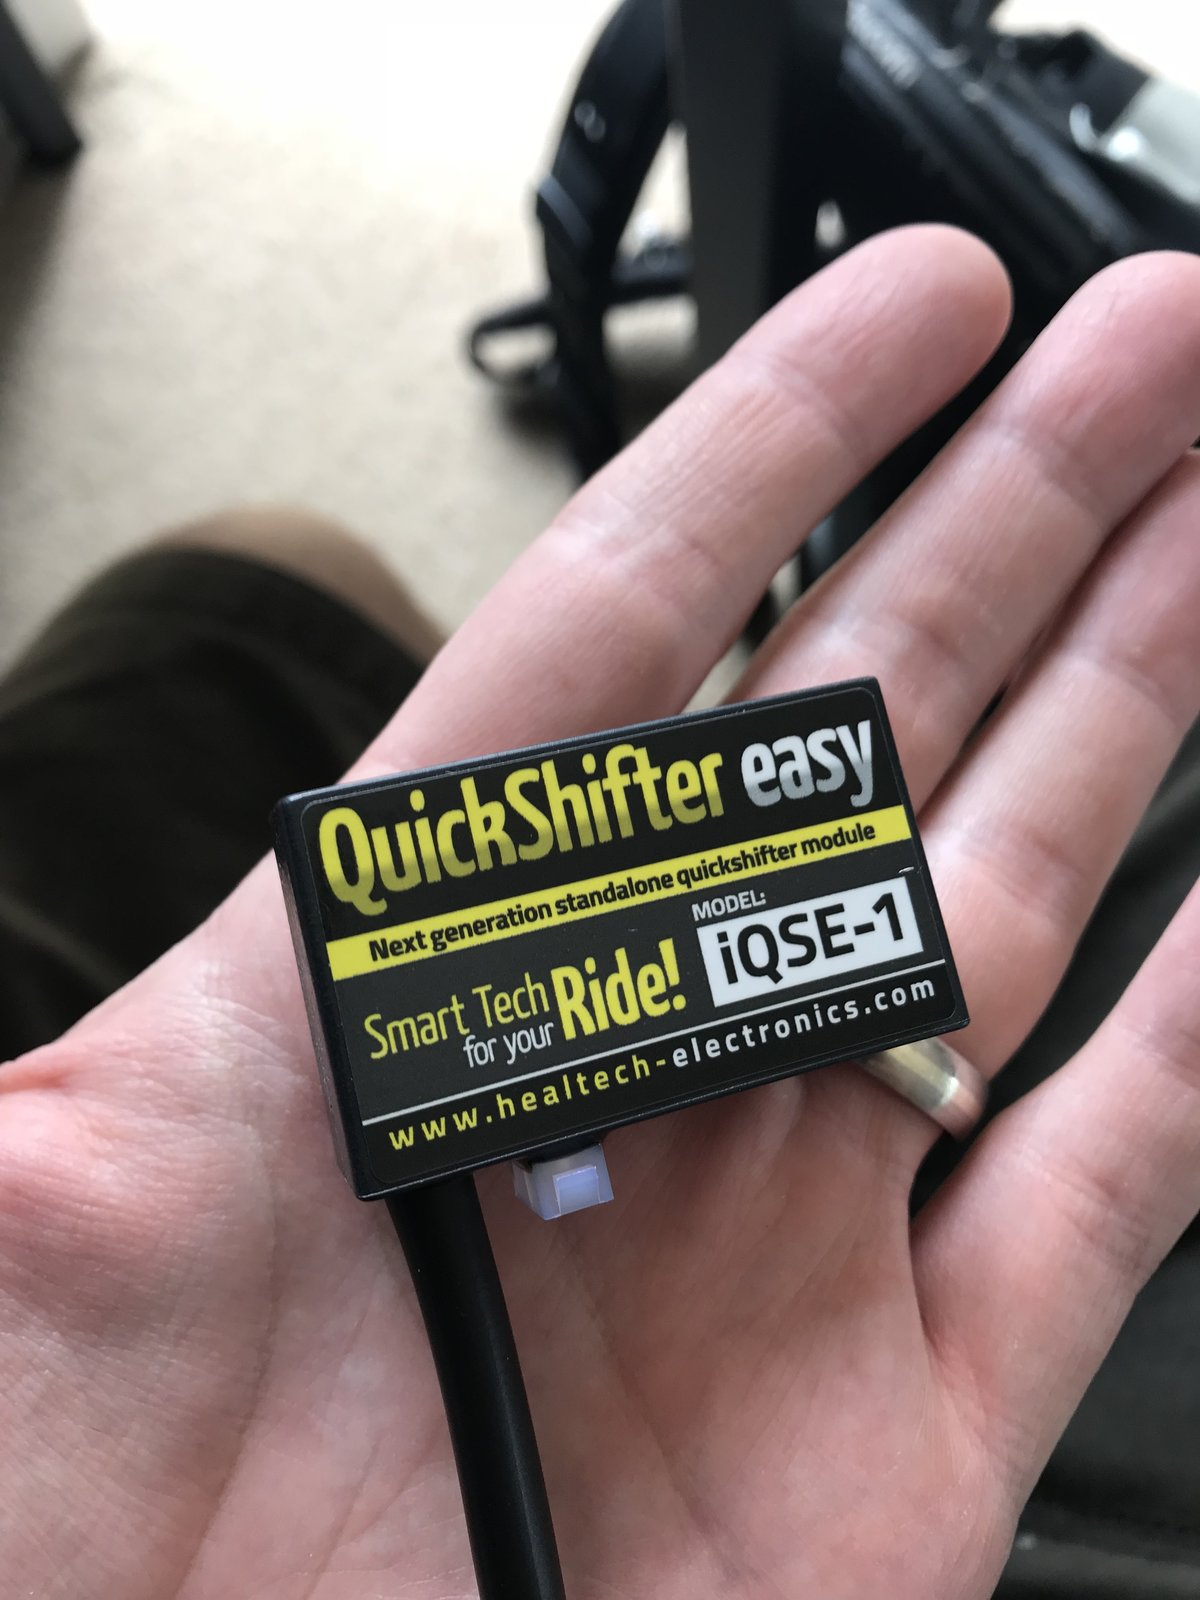 For Sale - Healtech Quickshifter For 848/1098/1198/sfighter